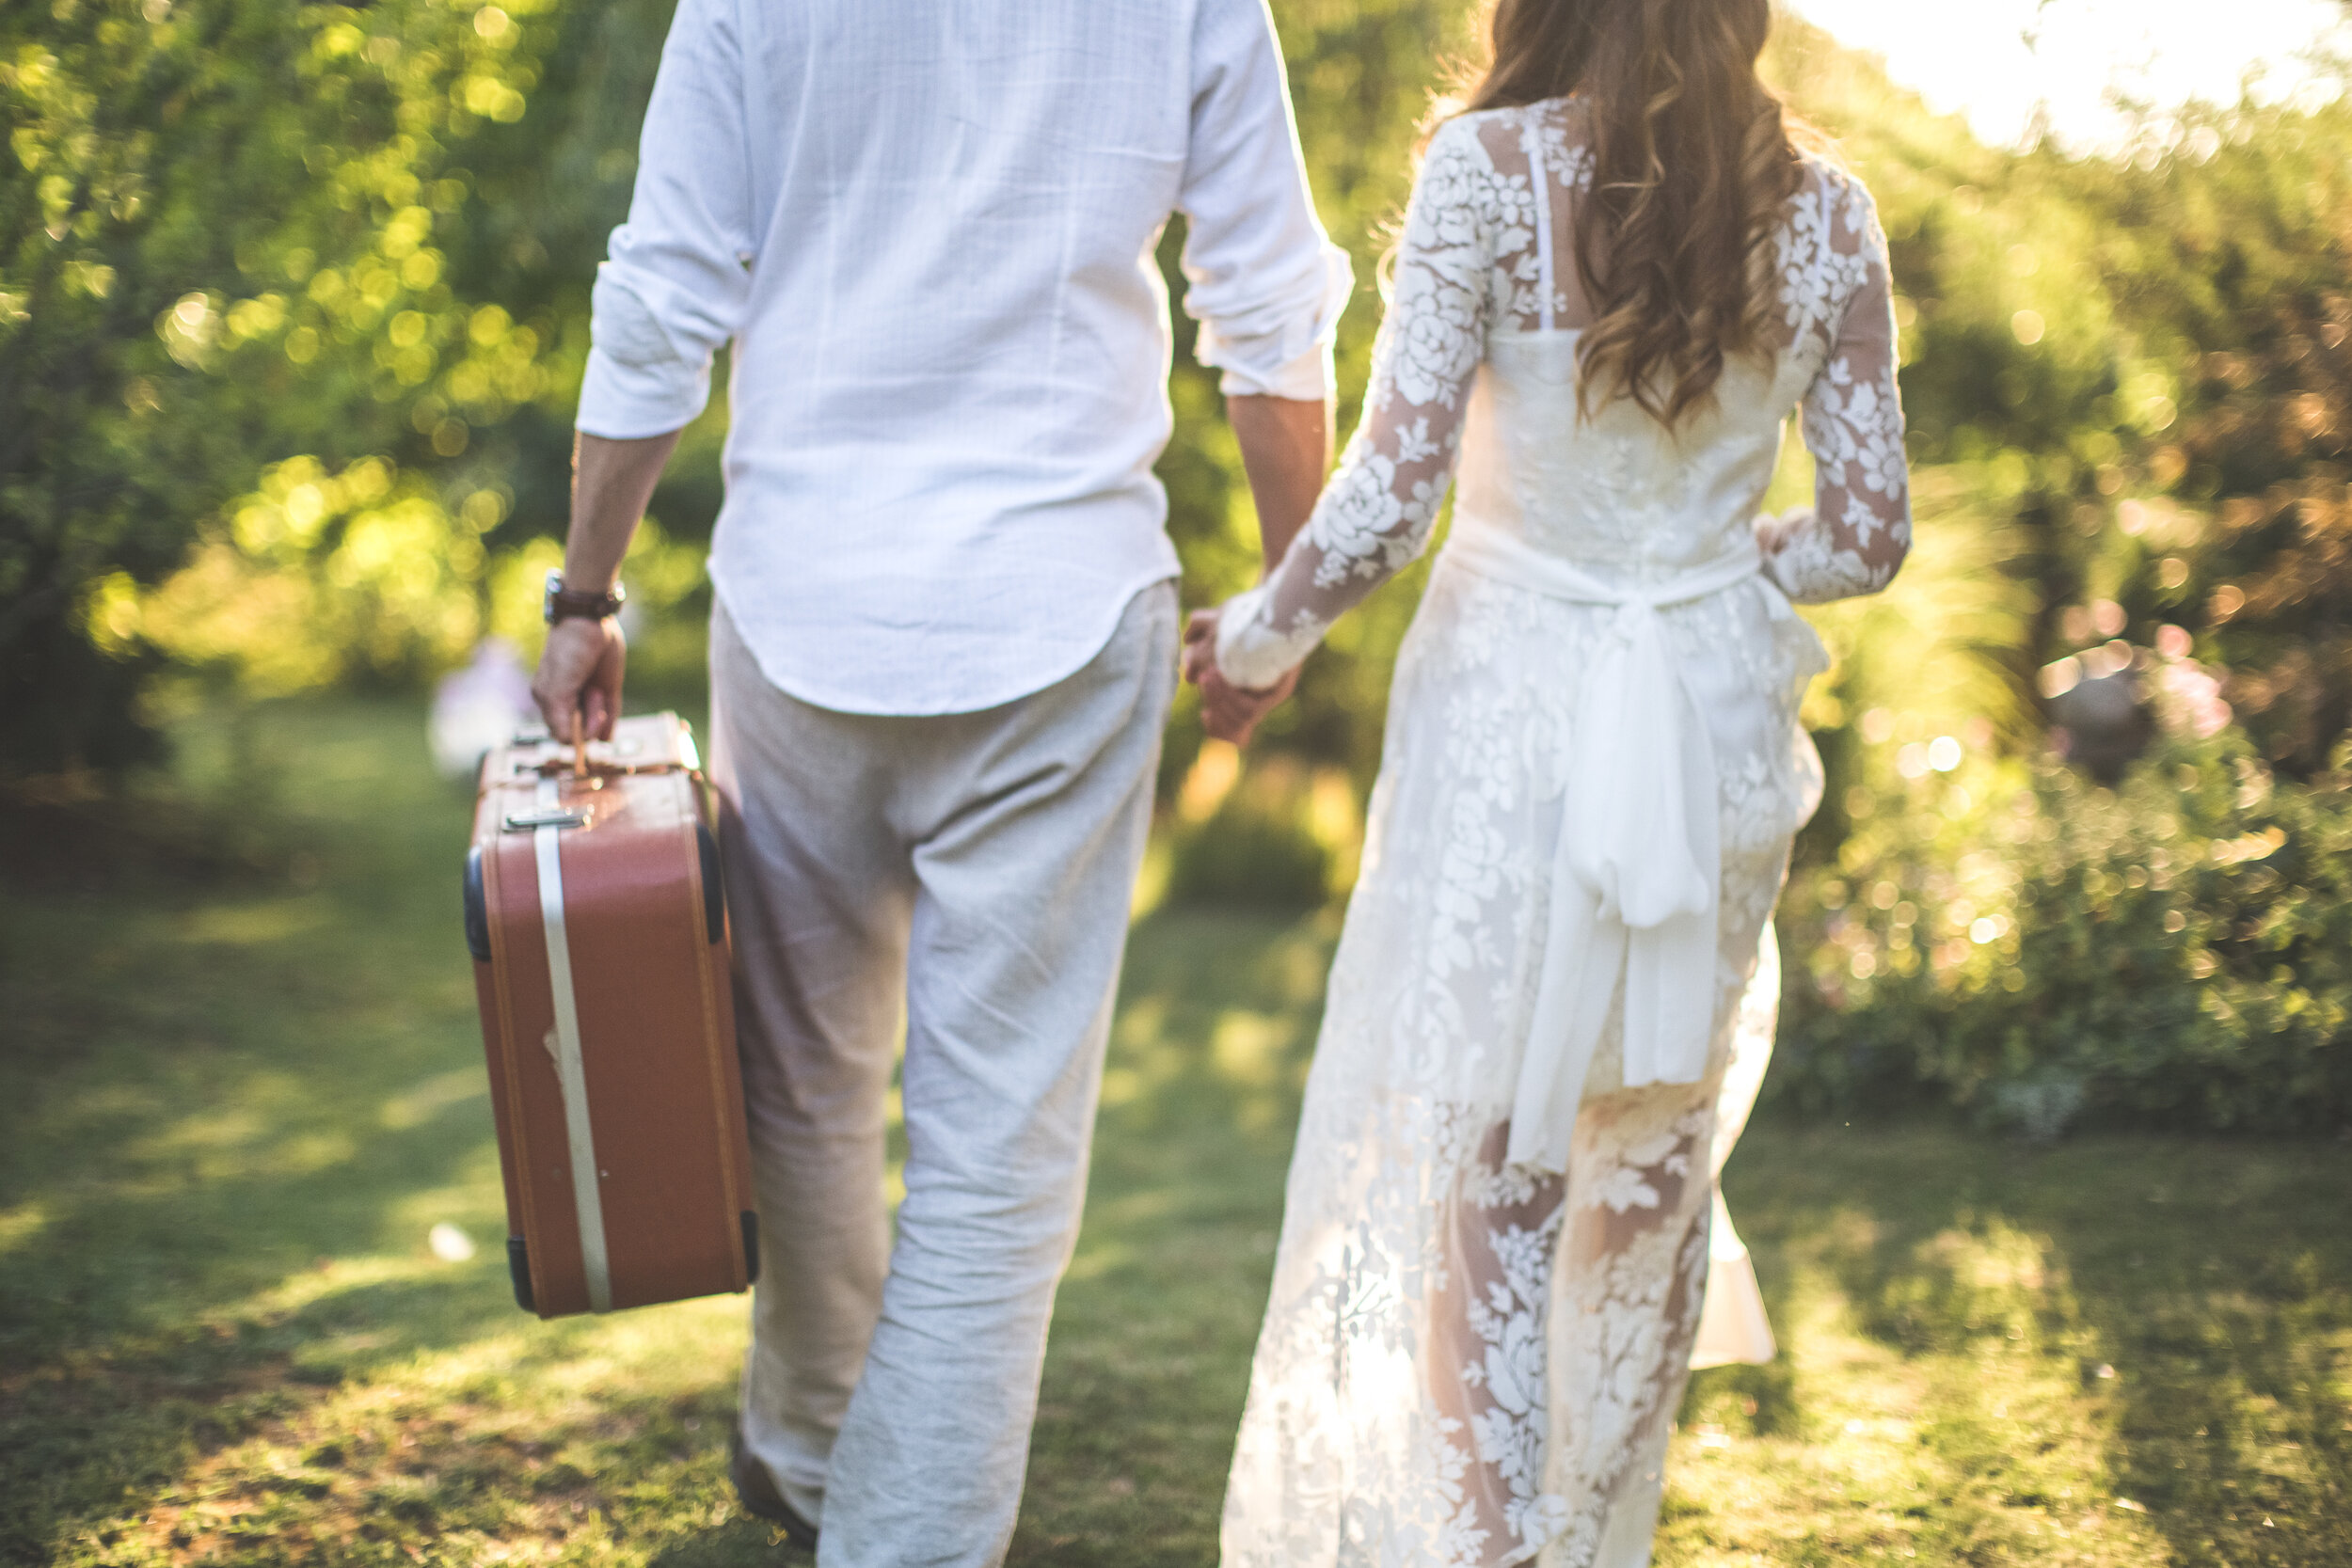 bride and groom holding hands carrying luggage.jpg